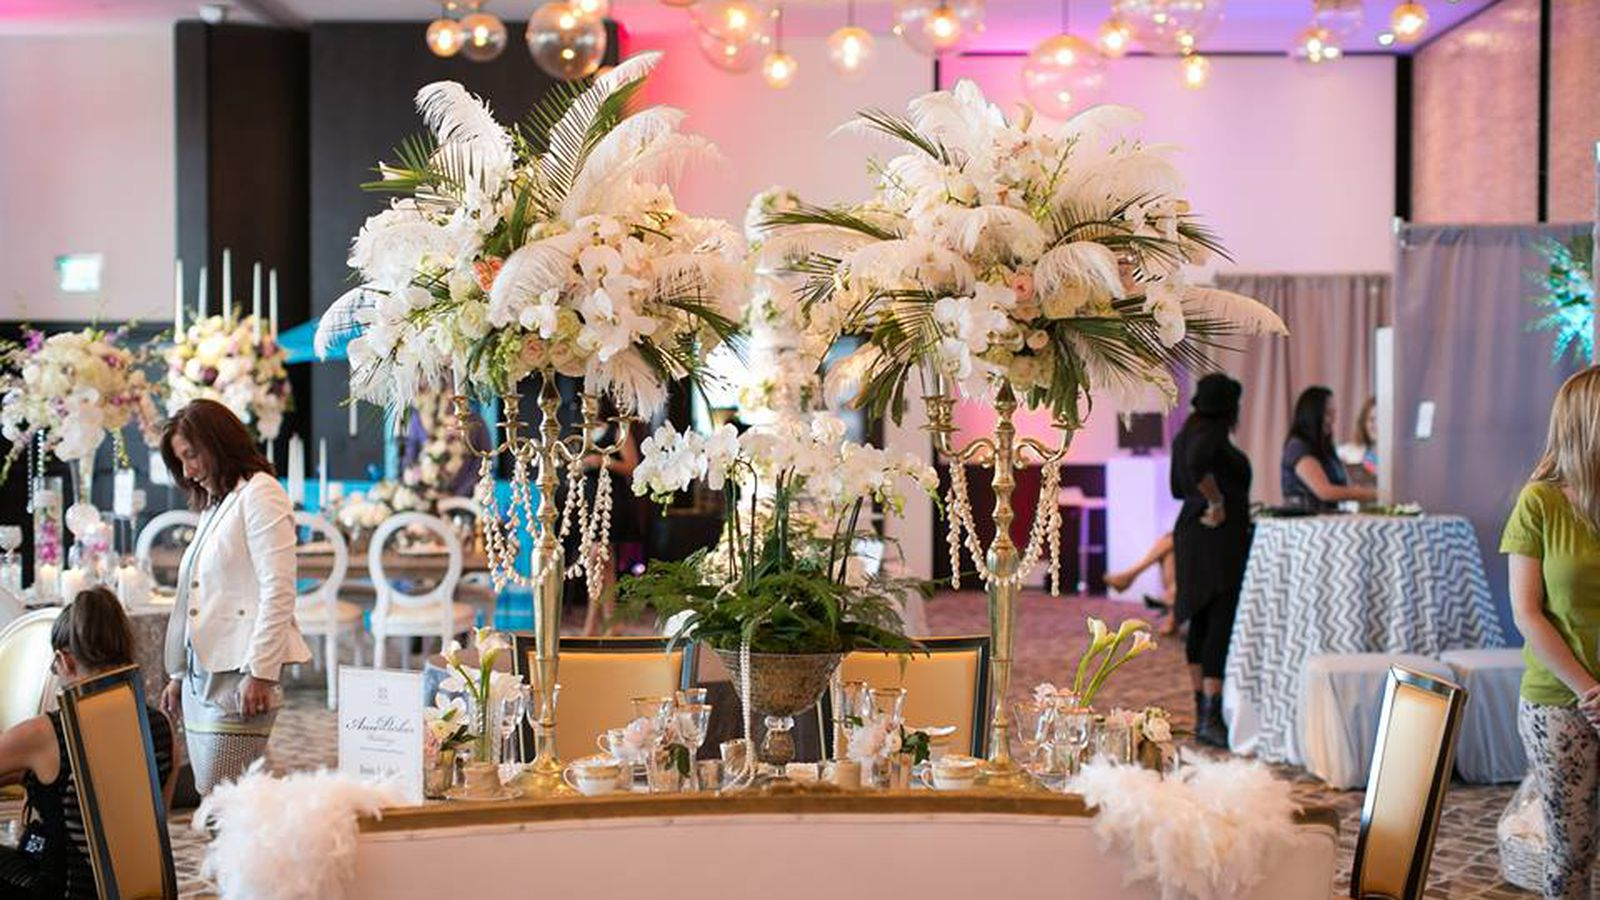 Wedding salon 39 s bridal show a jewelry pop up at the for 42nd street salon